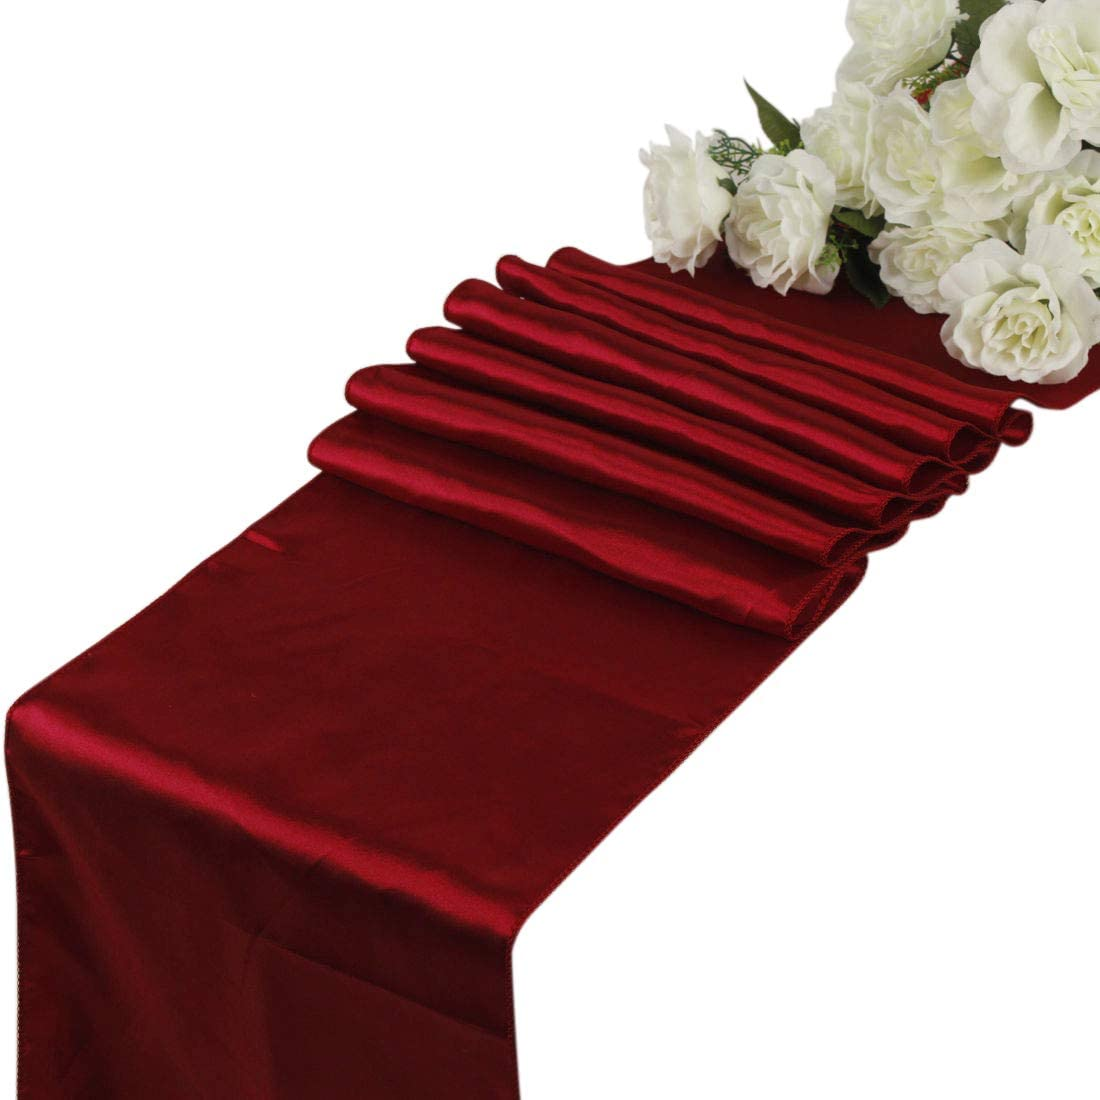 mds Pack of 5 Wedding 12 x 108 inch Satin Table Runner for Wedding Banquet Decoration- Apple Red